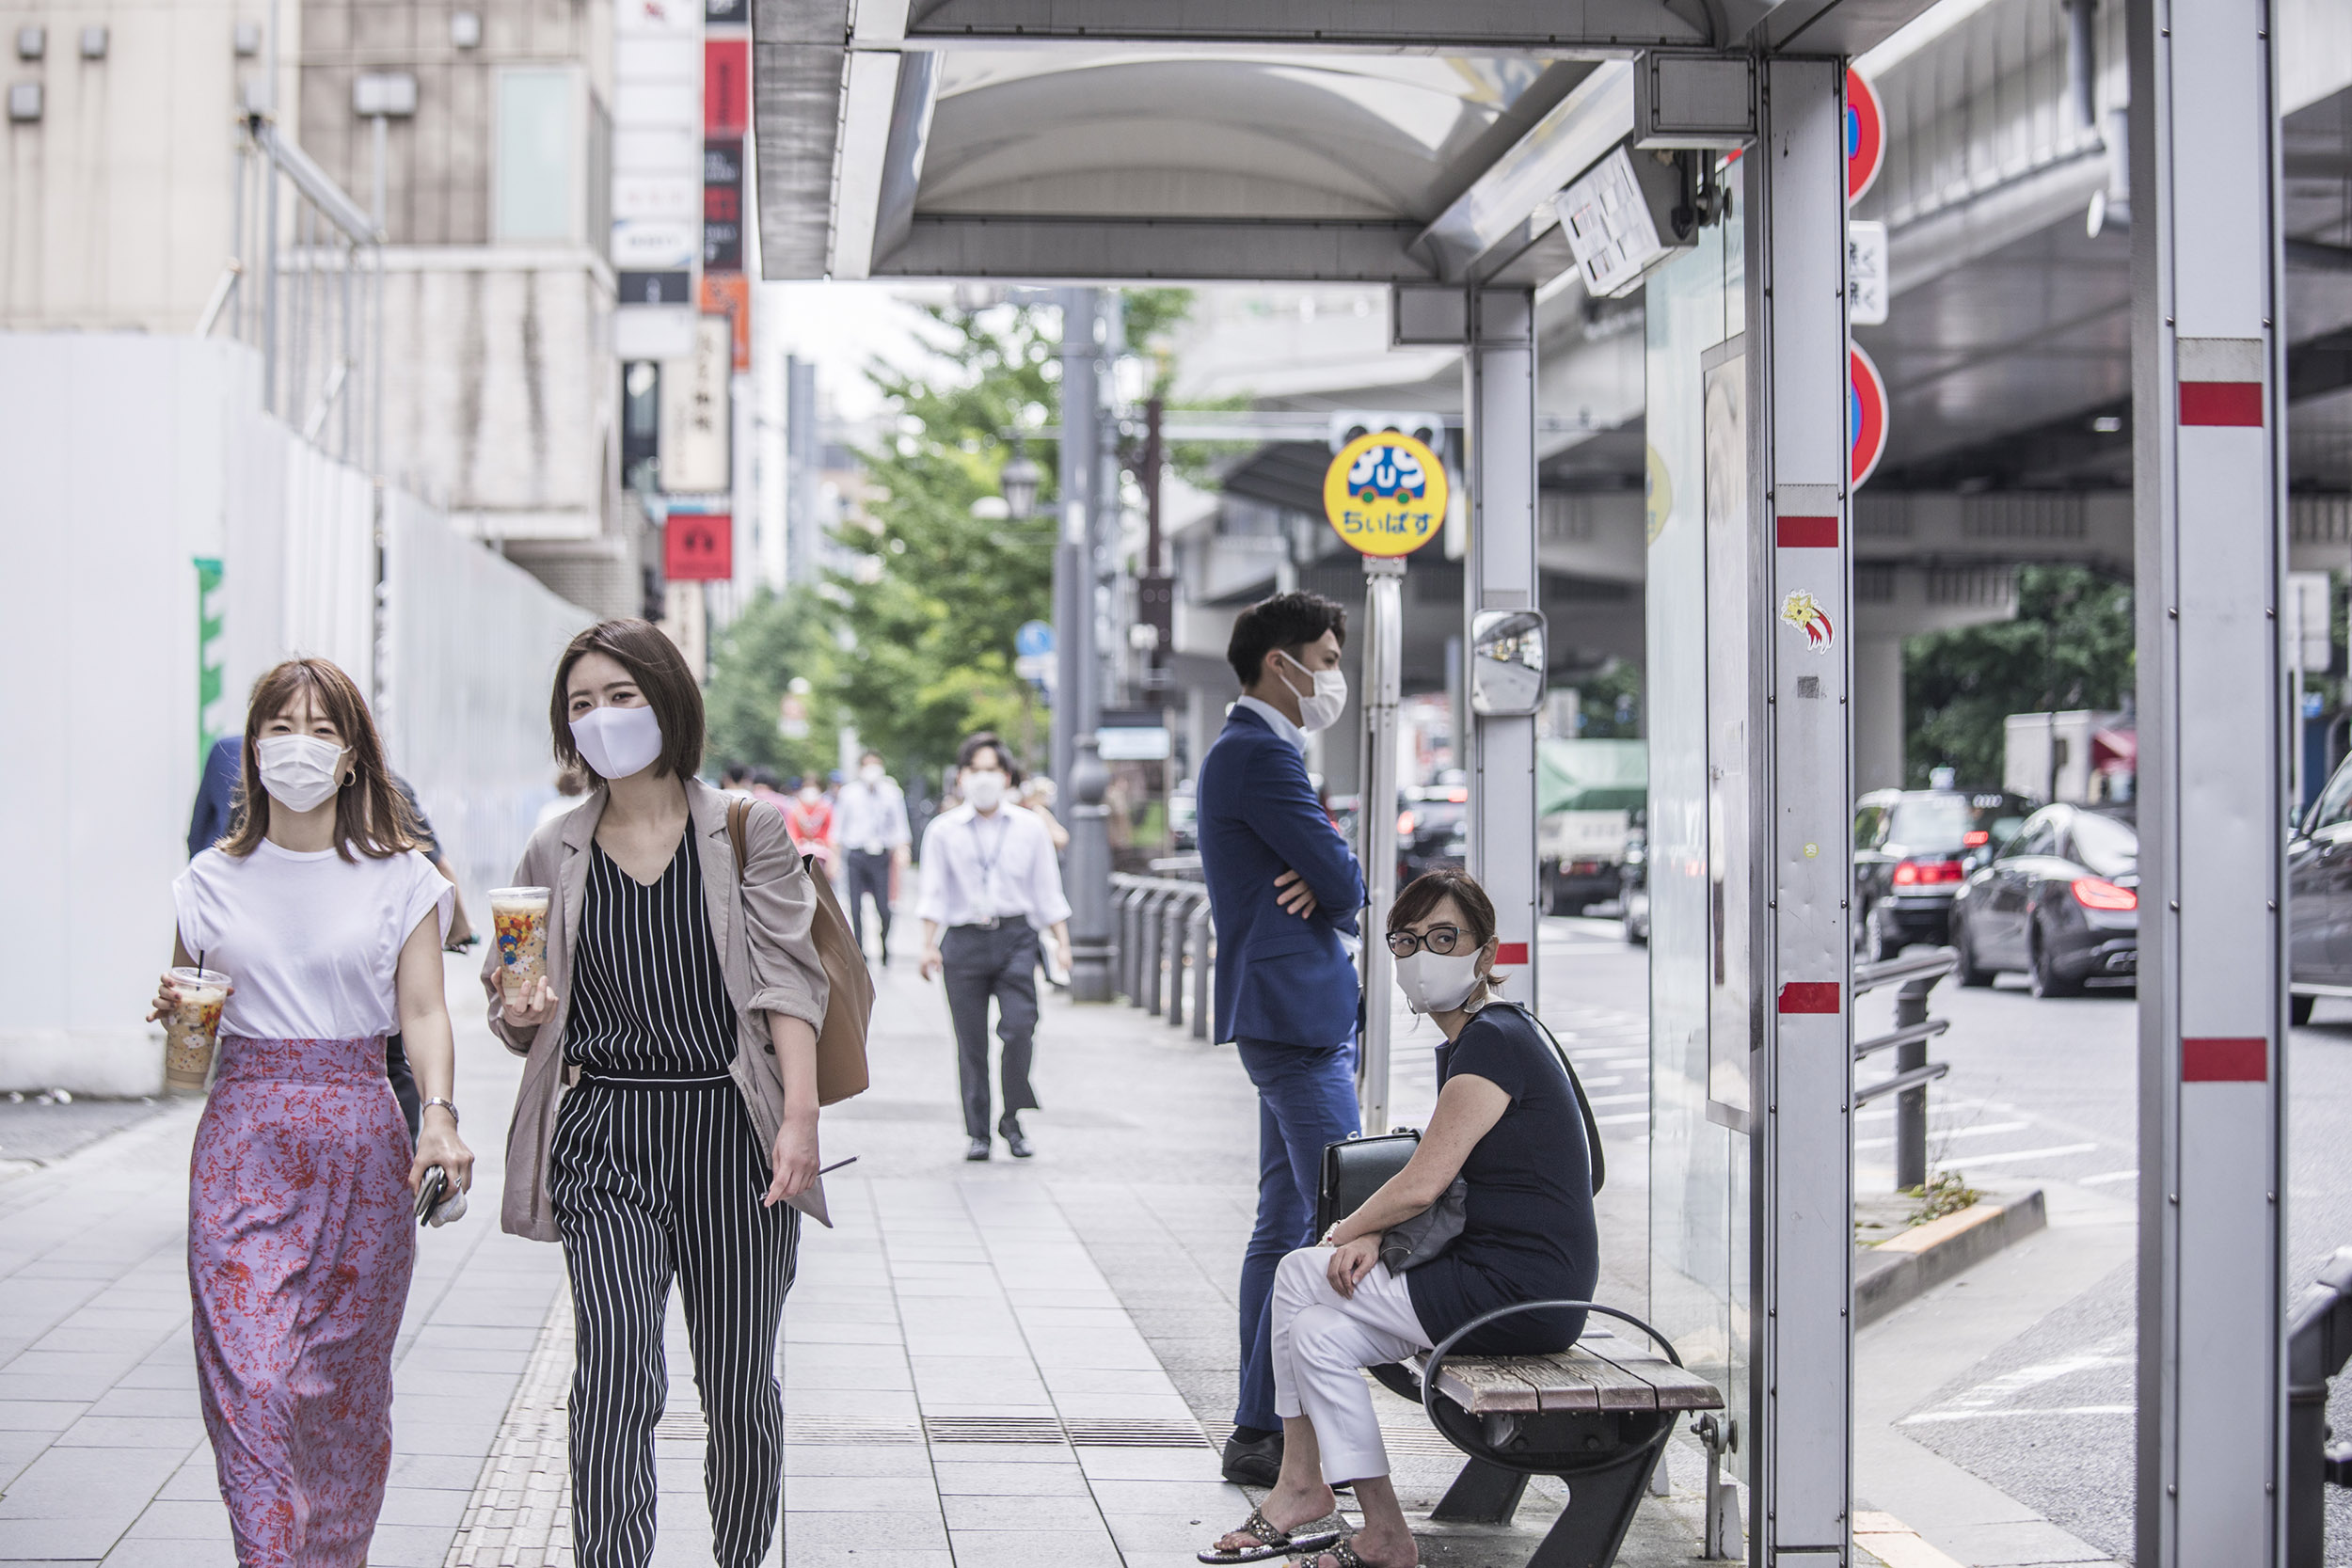 Pedestrians wearing protective masks walk along a sidewalk in Tokyo, Japan, on Thursday, July 30.